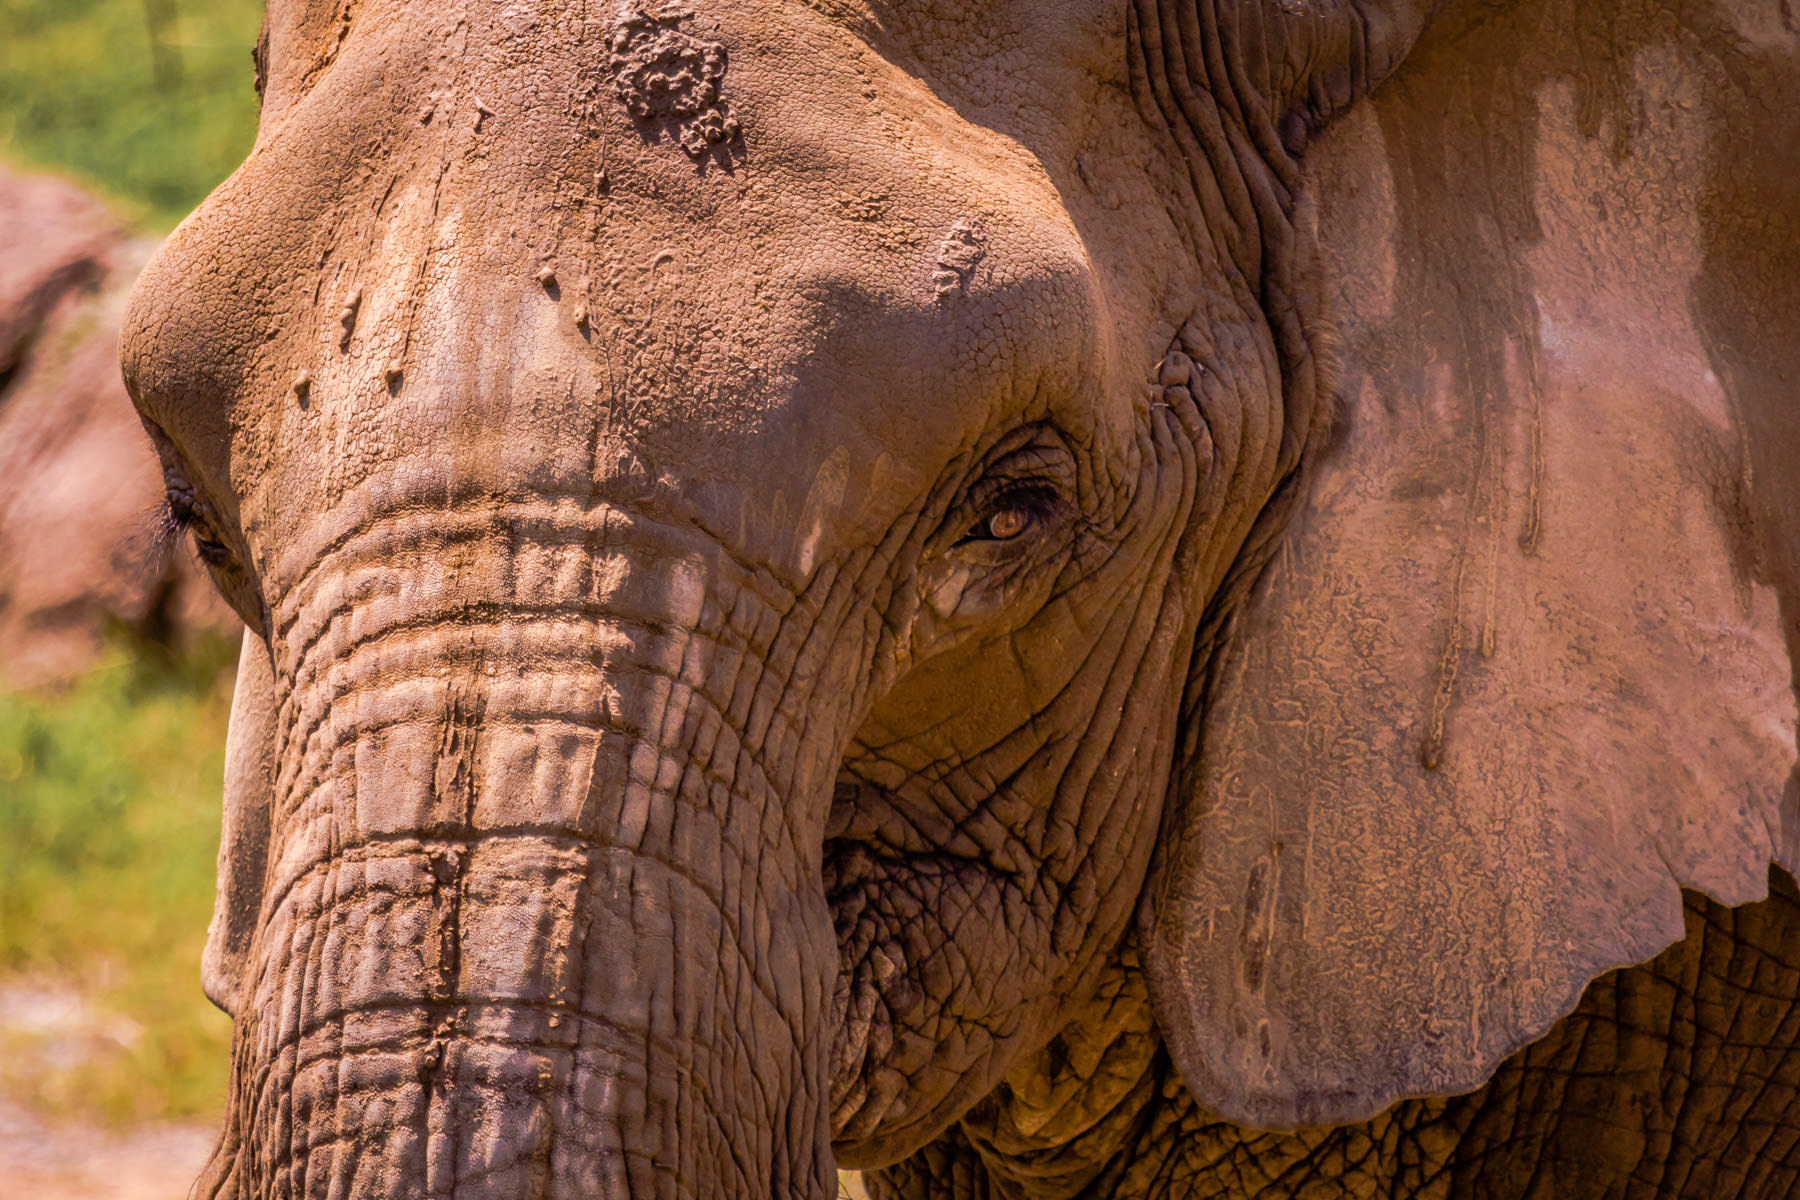 A wrinkled elephant at the Dallas Zoo.